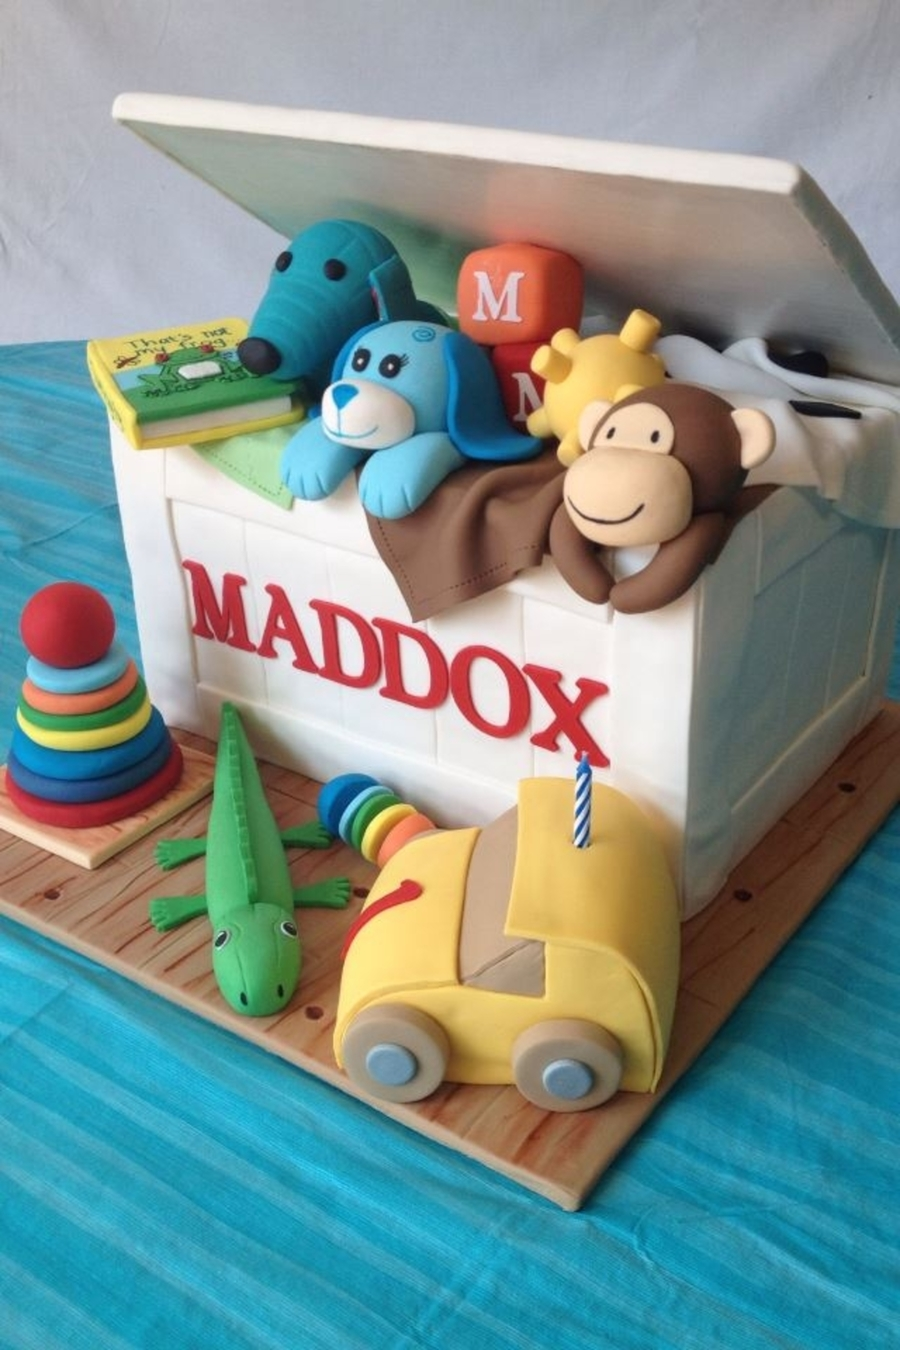 Birthday Cake Toy : Toy box birthday cake cakecentral